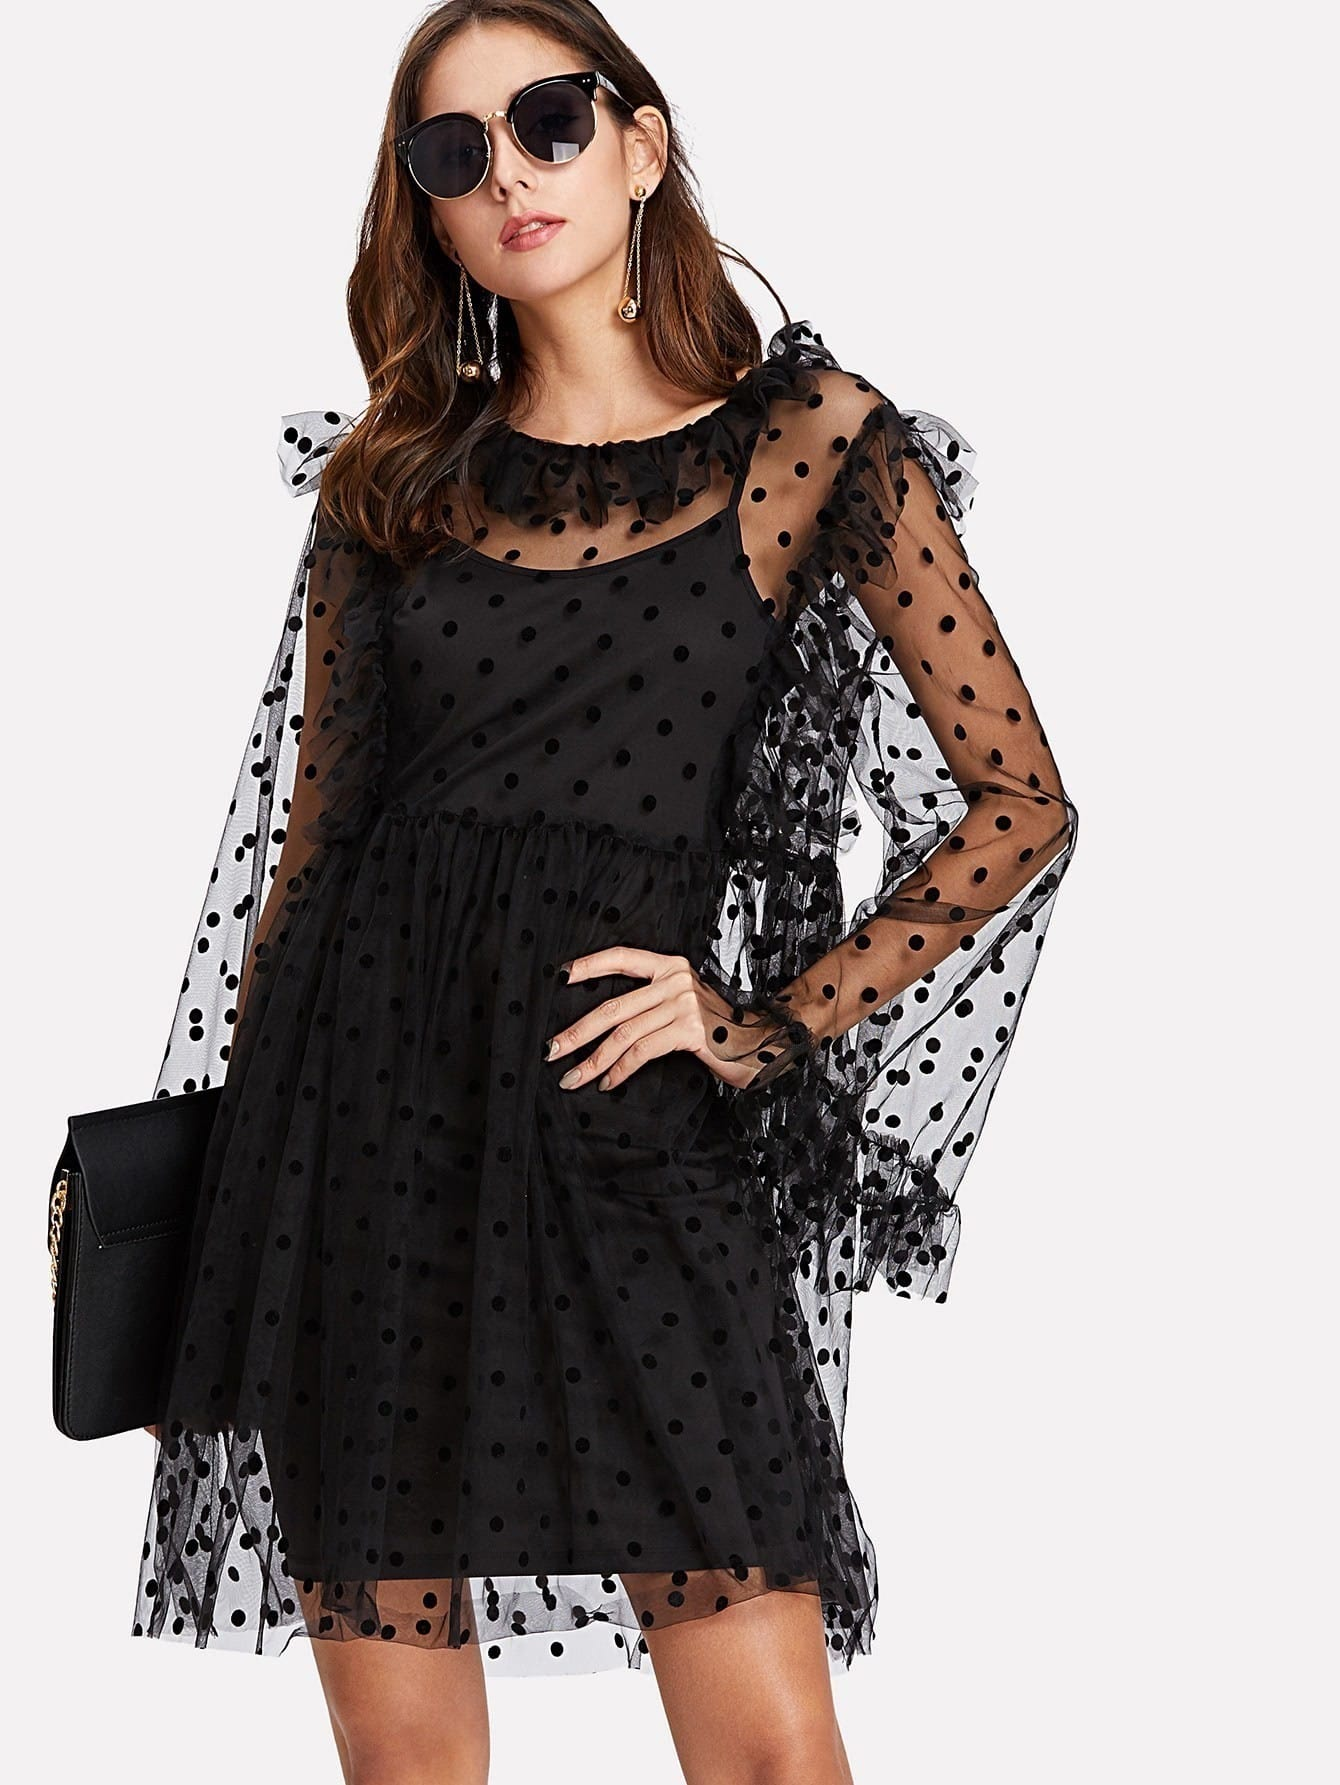 Dot Mesh Overlay Frill Detail Dress Set frill detail crochet insert embroidered mesh top